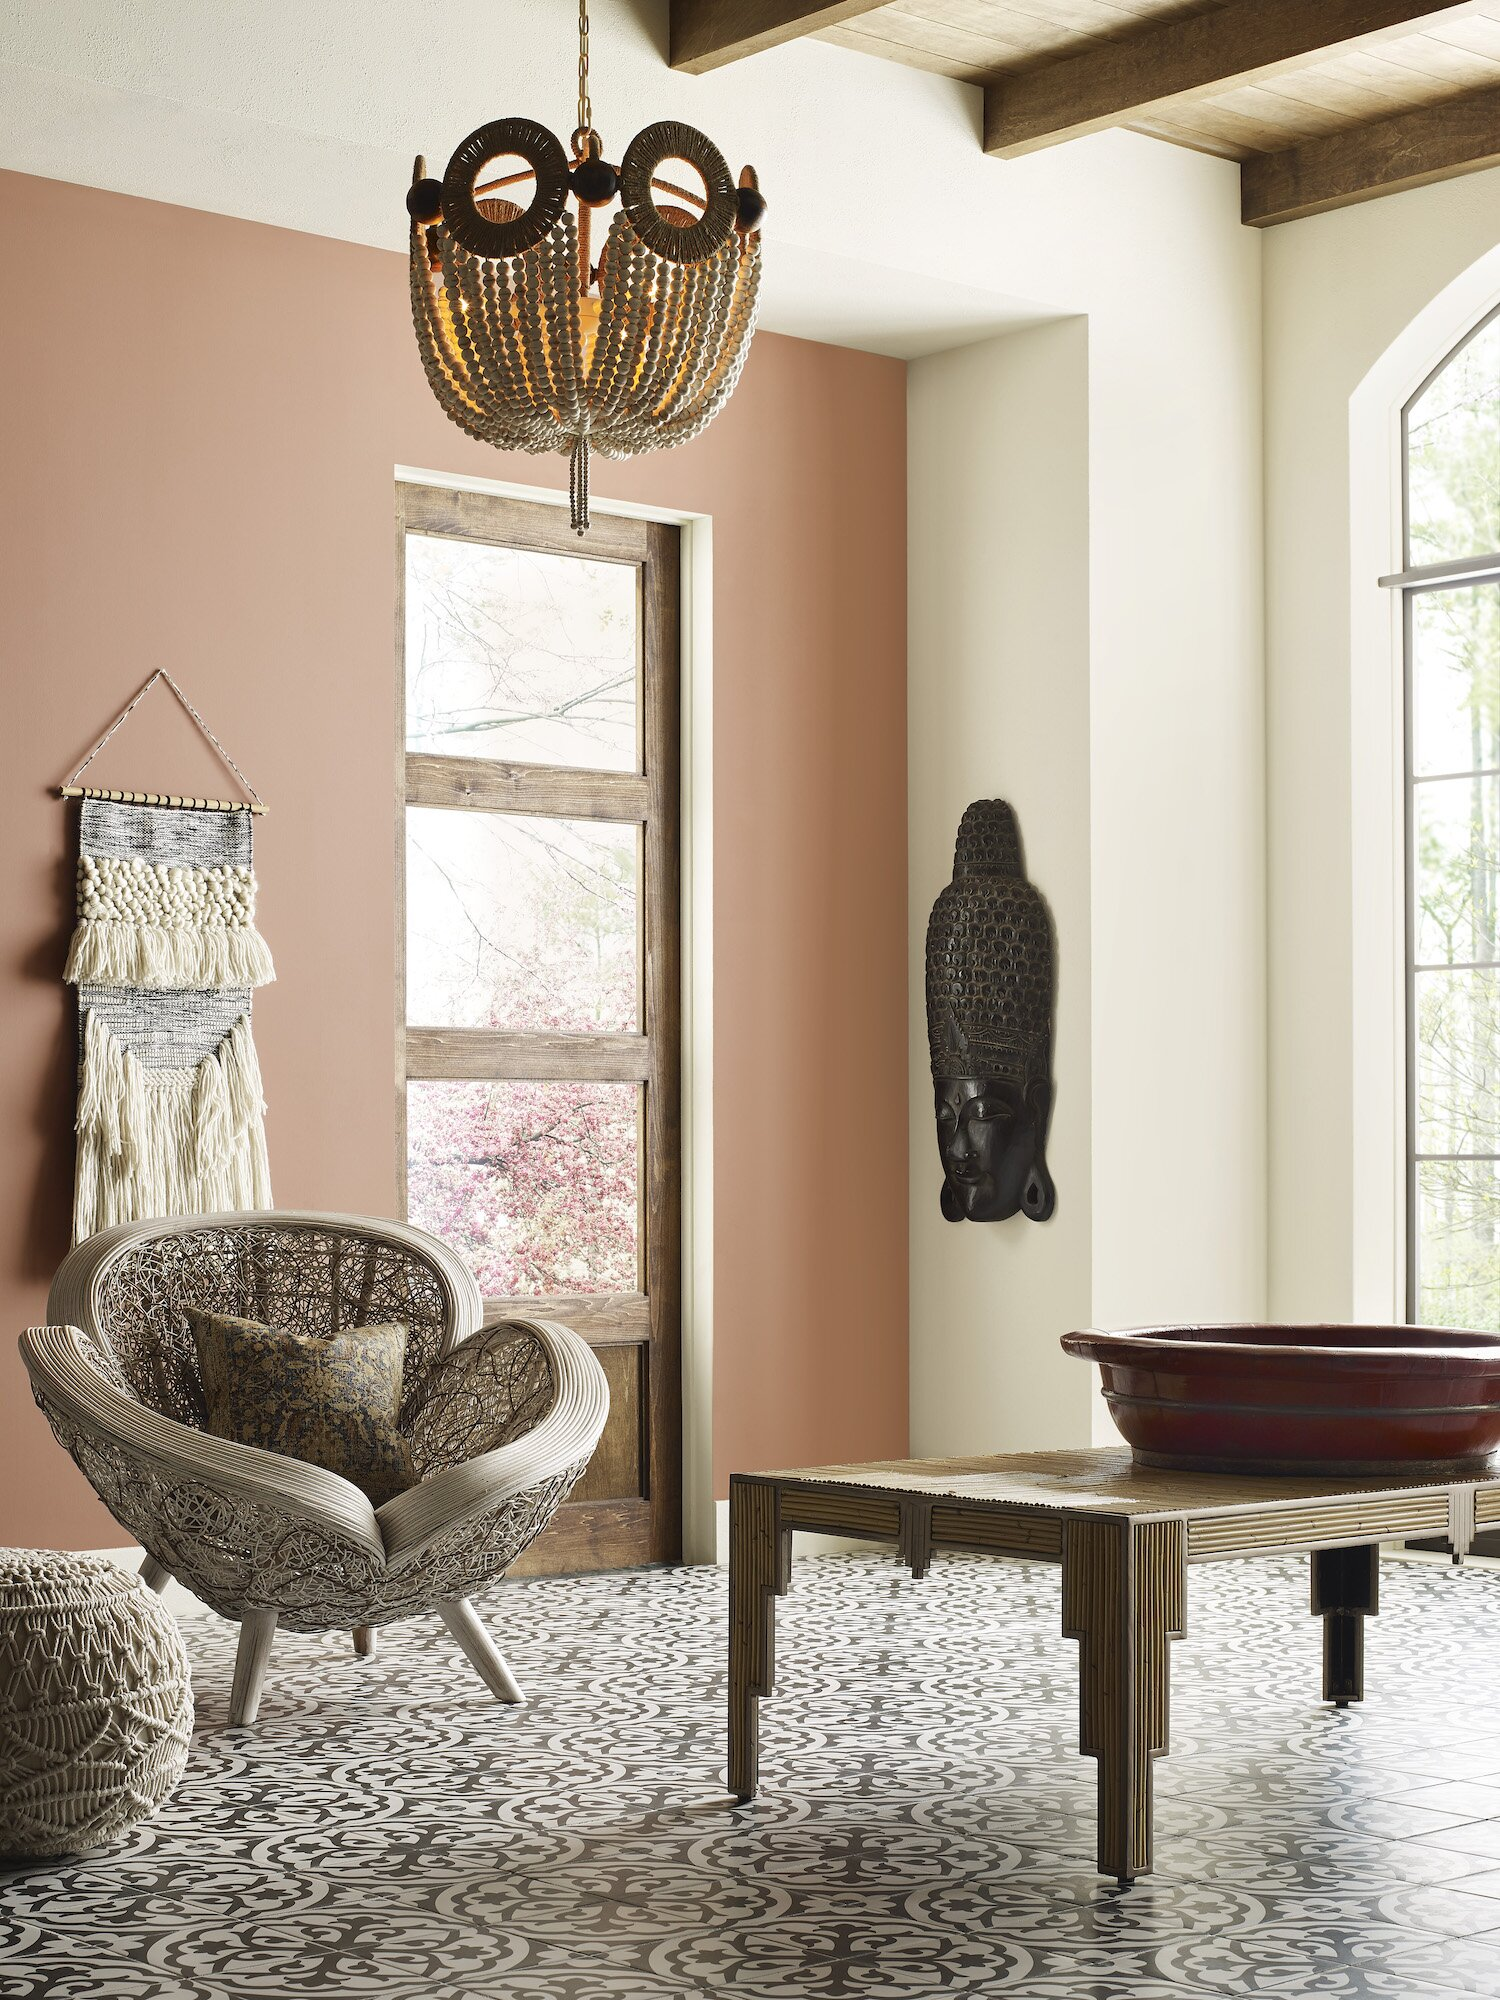 Room with clay colored paint